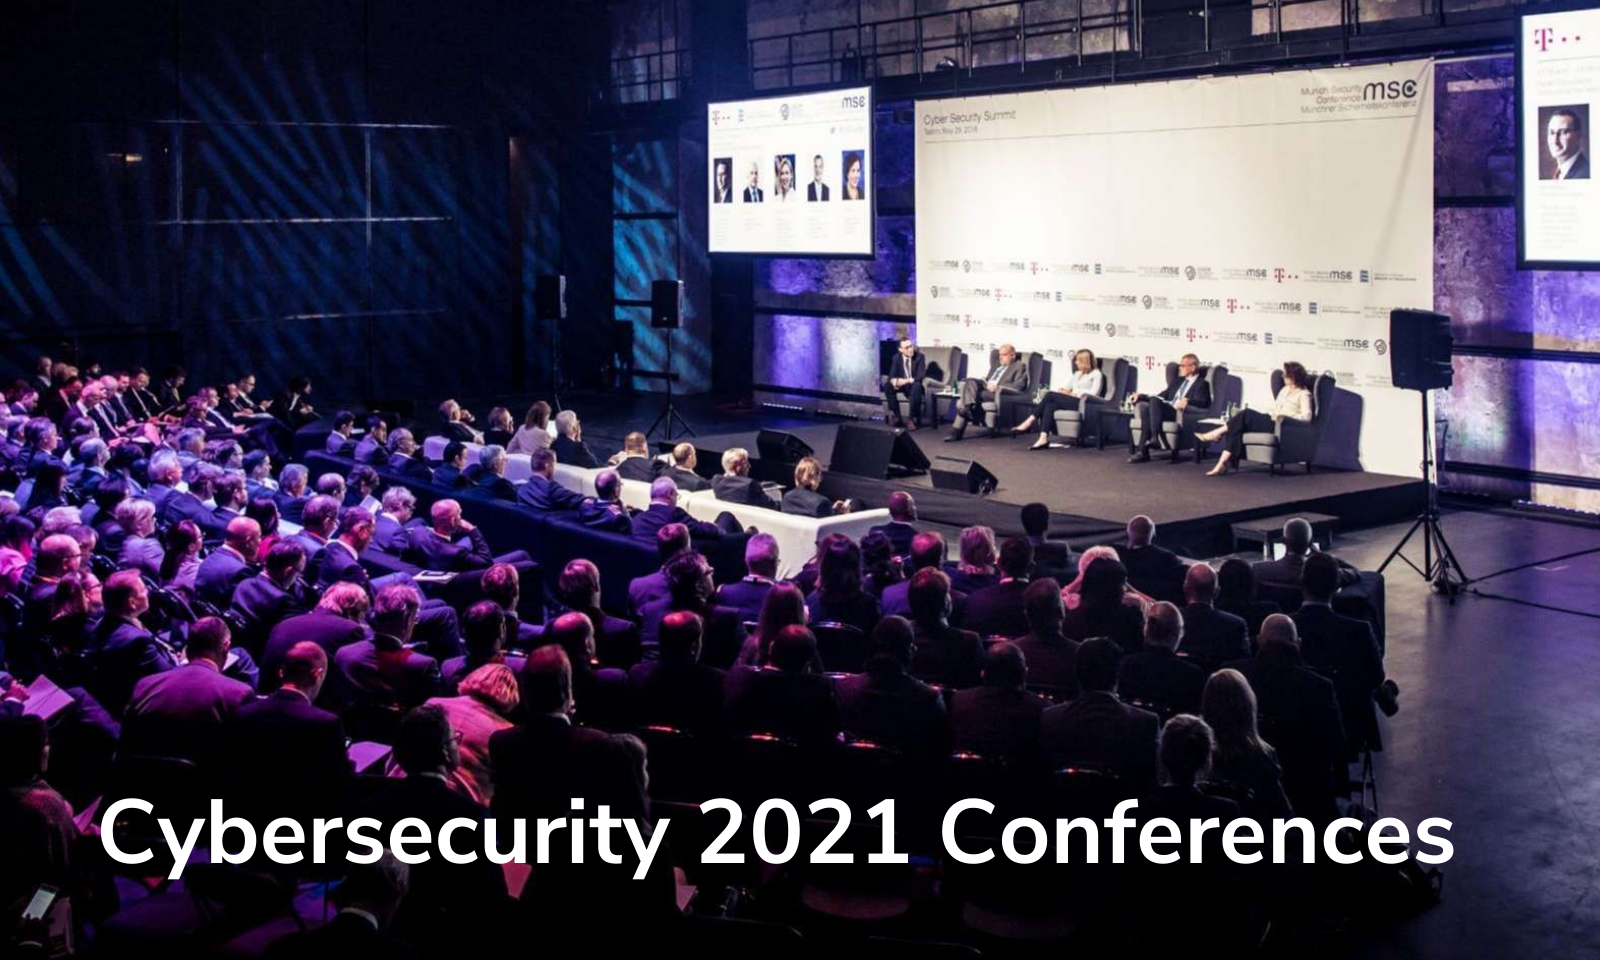 Cybersecurity 2021 Conferences